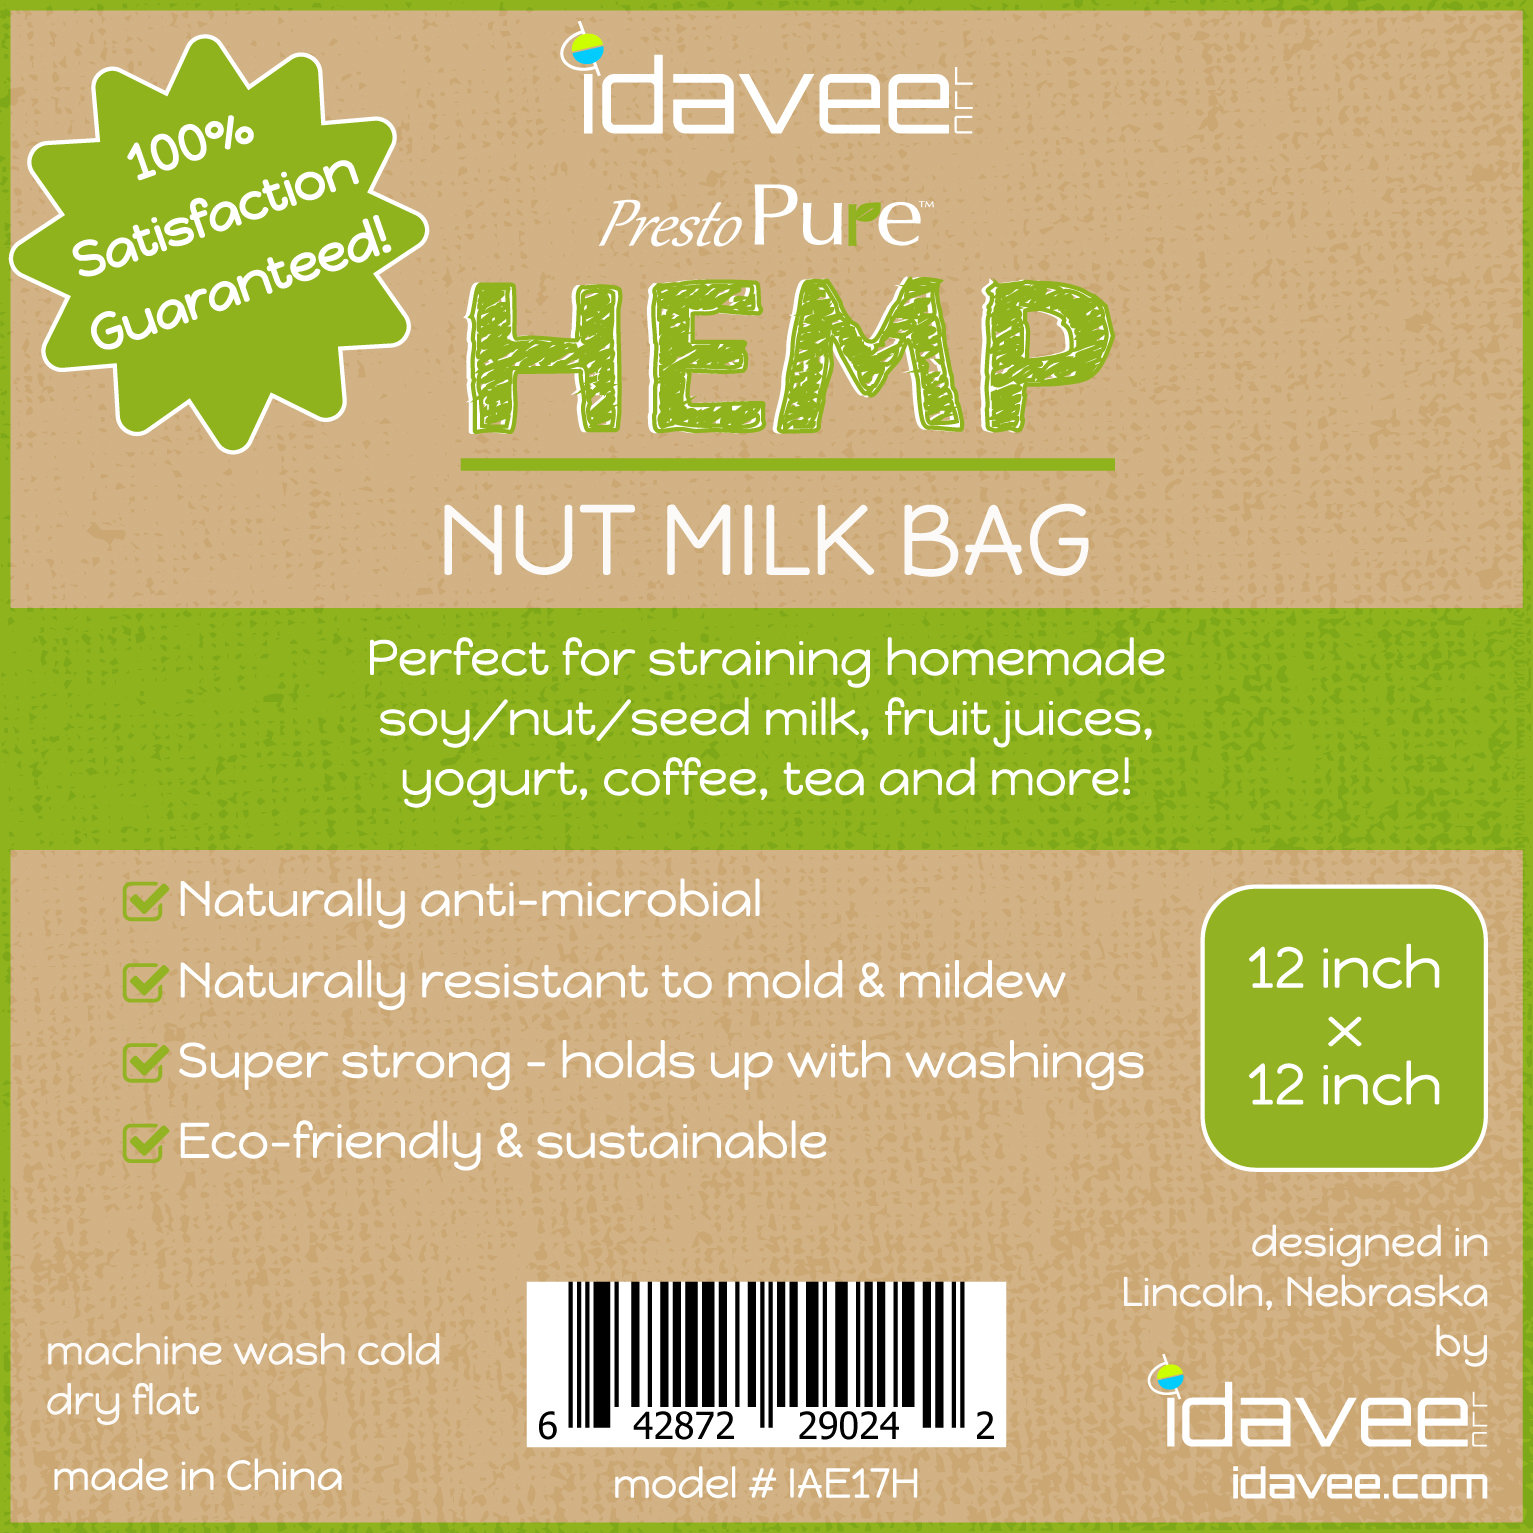 "Idavee Brand Presto Pure IAE17H 12x12"" Reusable Hemp Straining Bag"